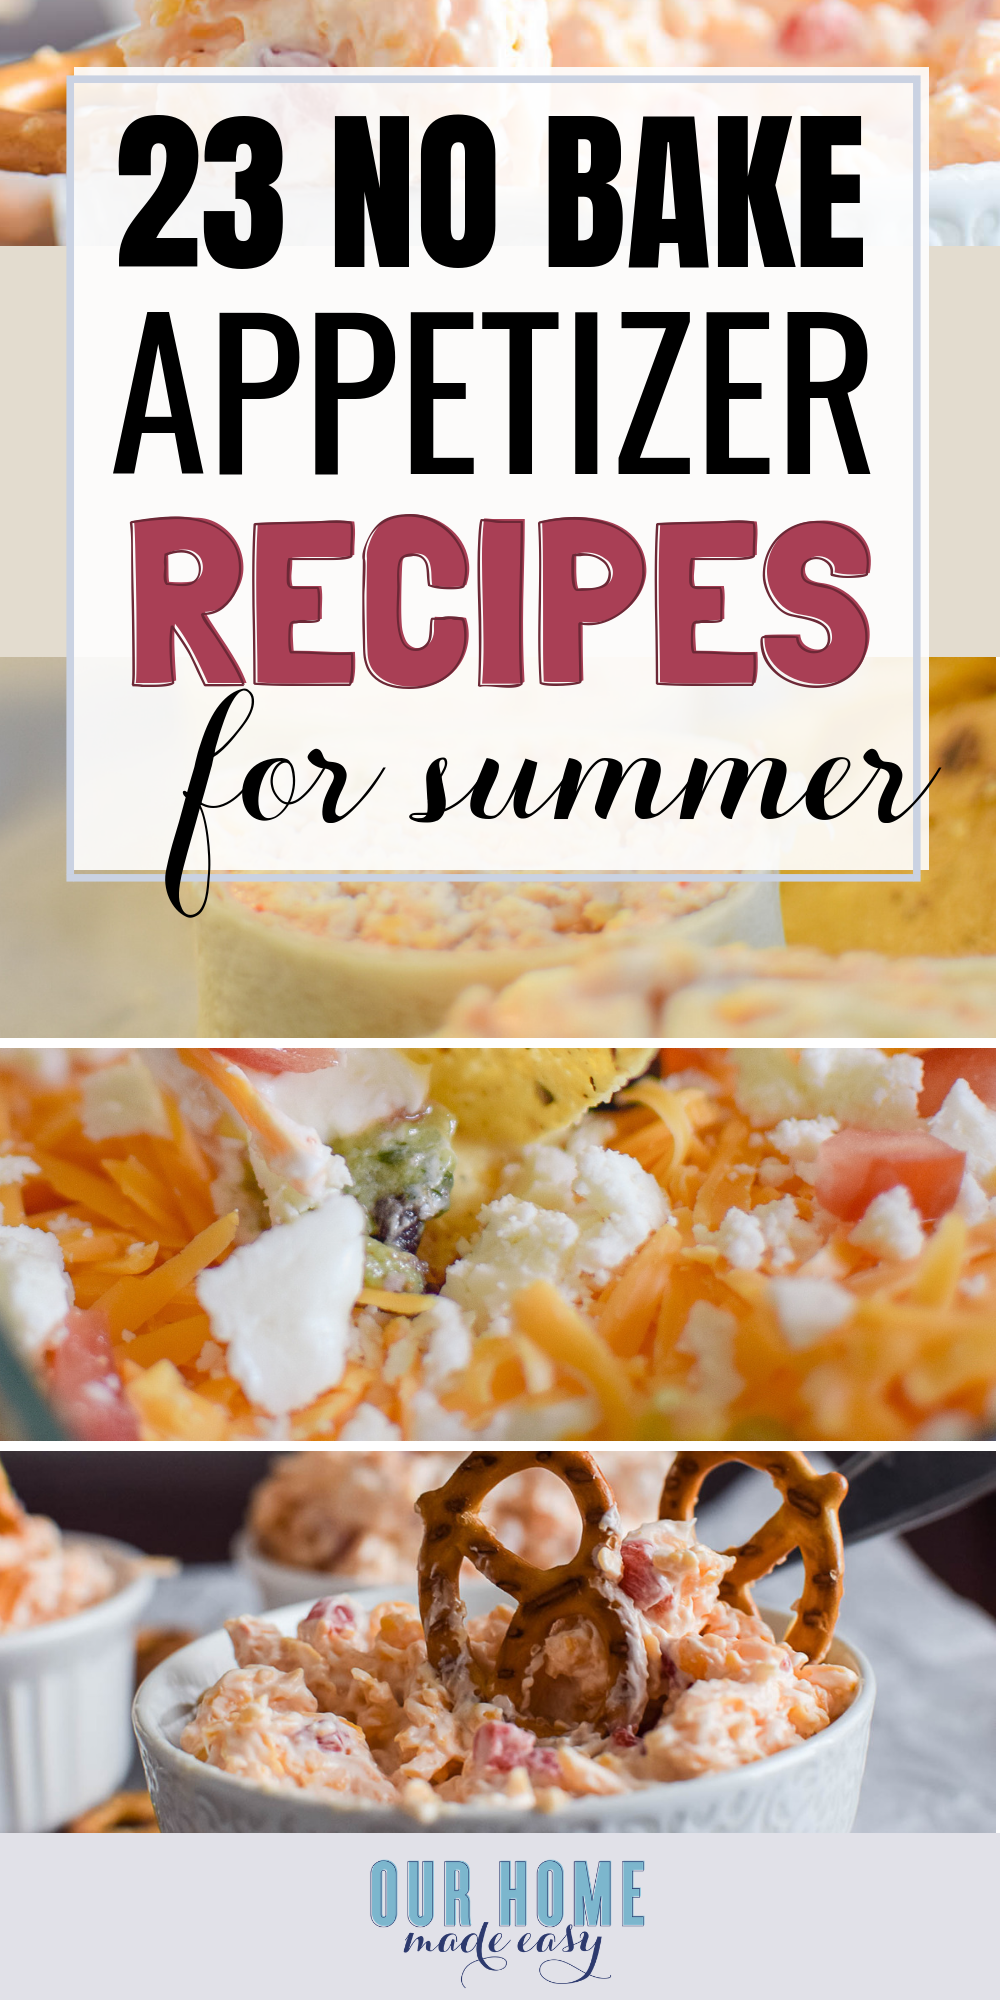 23 Easy No Bake Appetizers for Summer - a collection of recipes that are easy and delicious, with no hassle needed in the hot summer heat